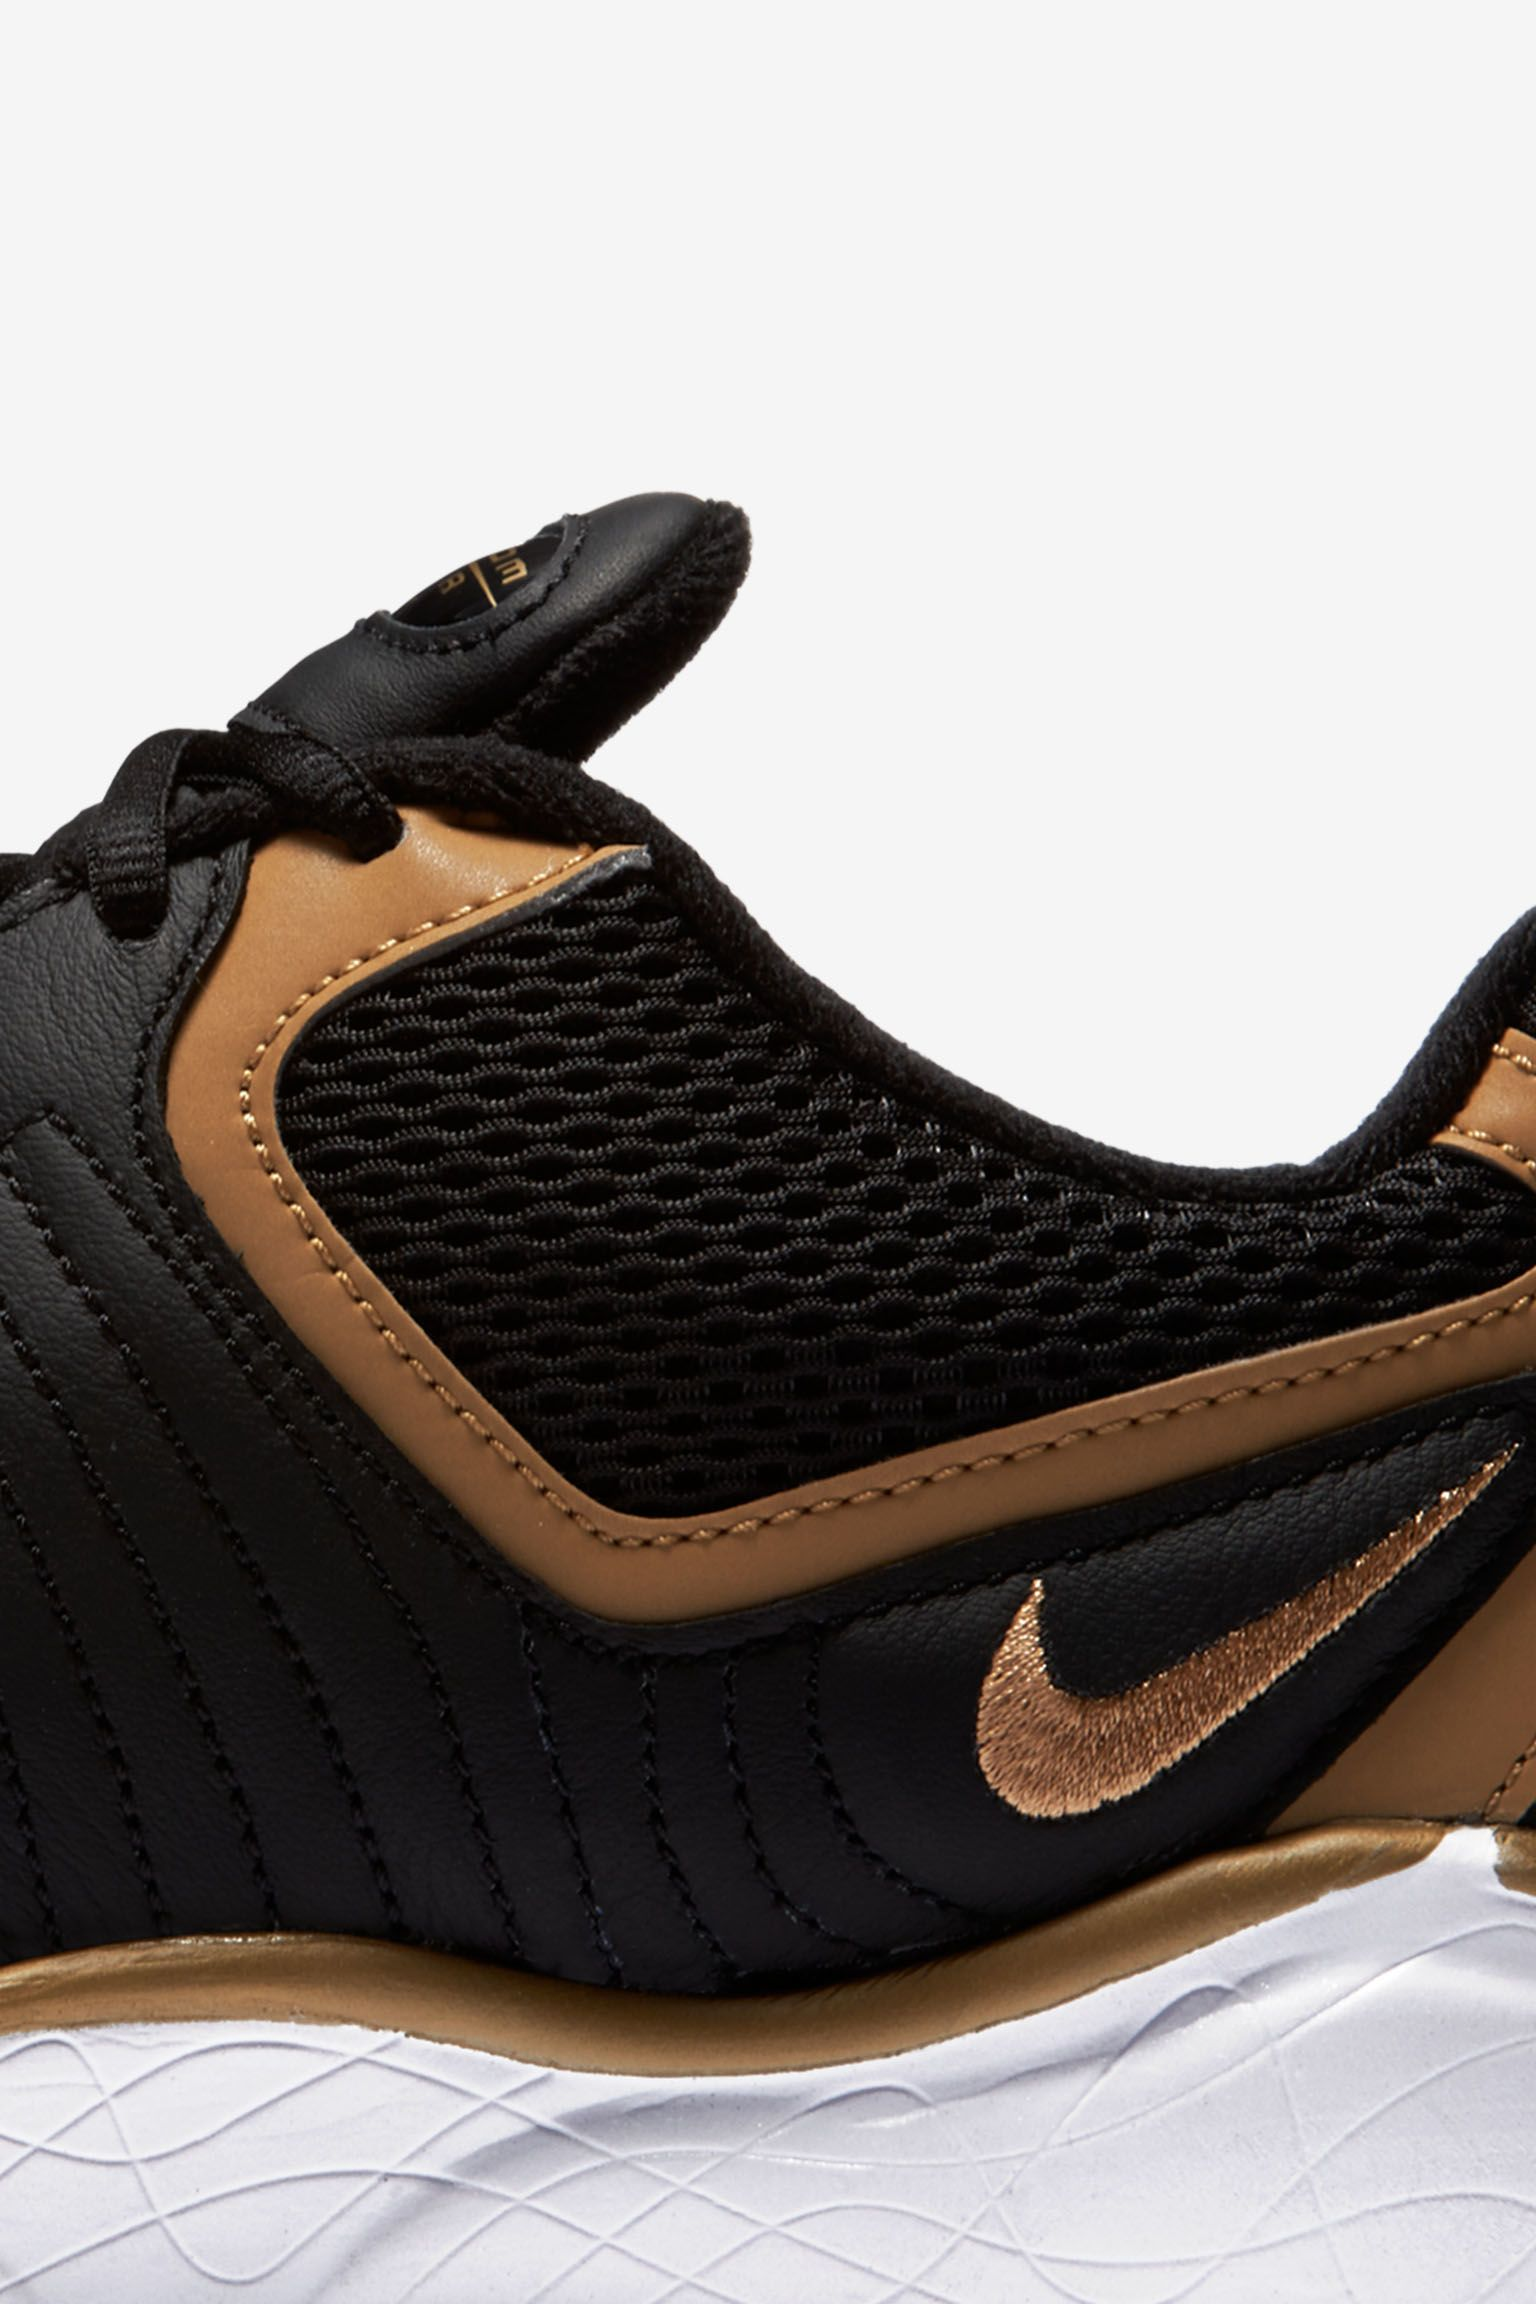 Nike Air Zoom Talaria 'Golden Shine' Release Date